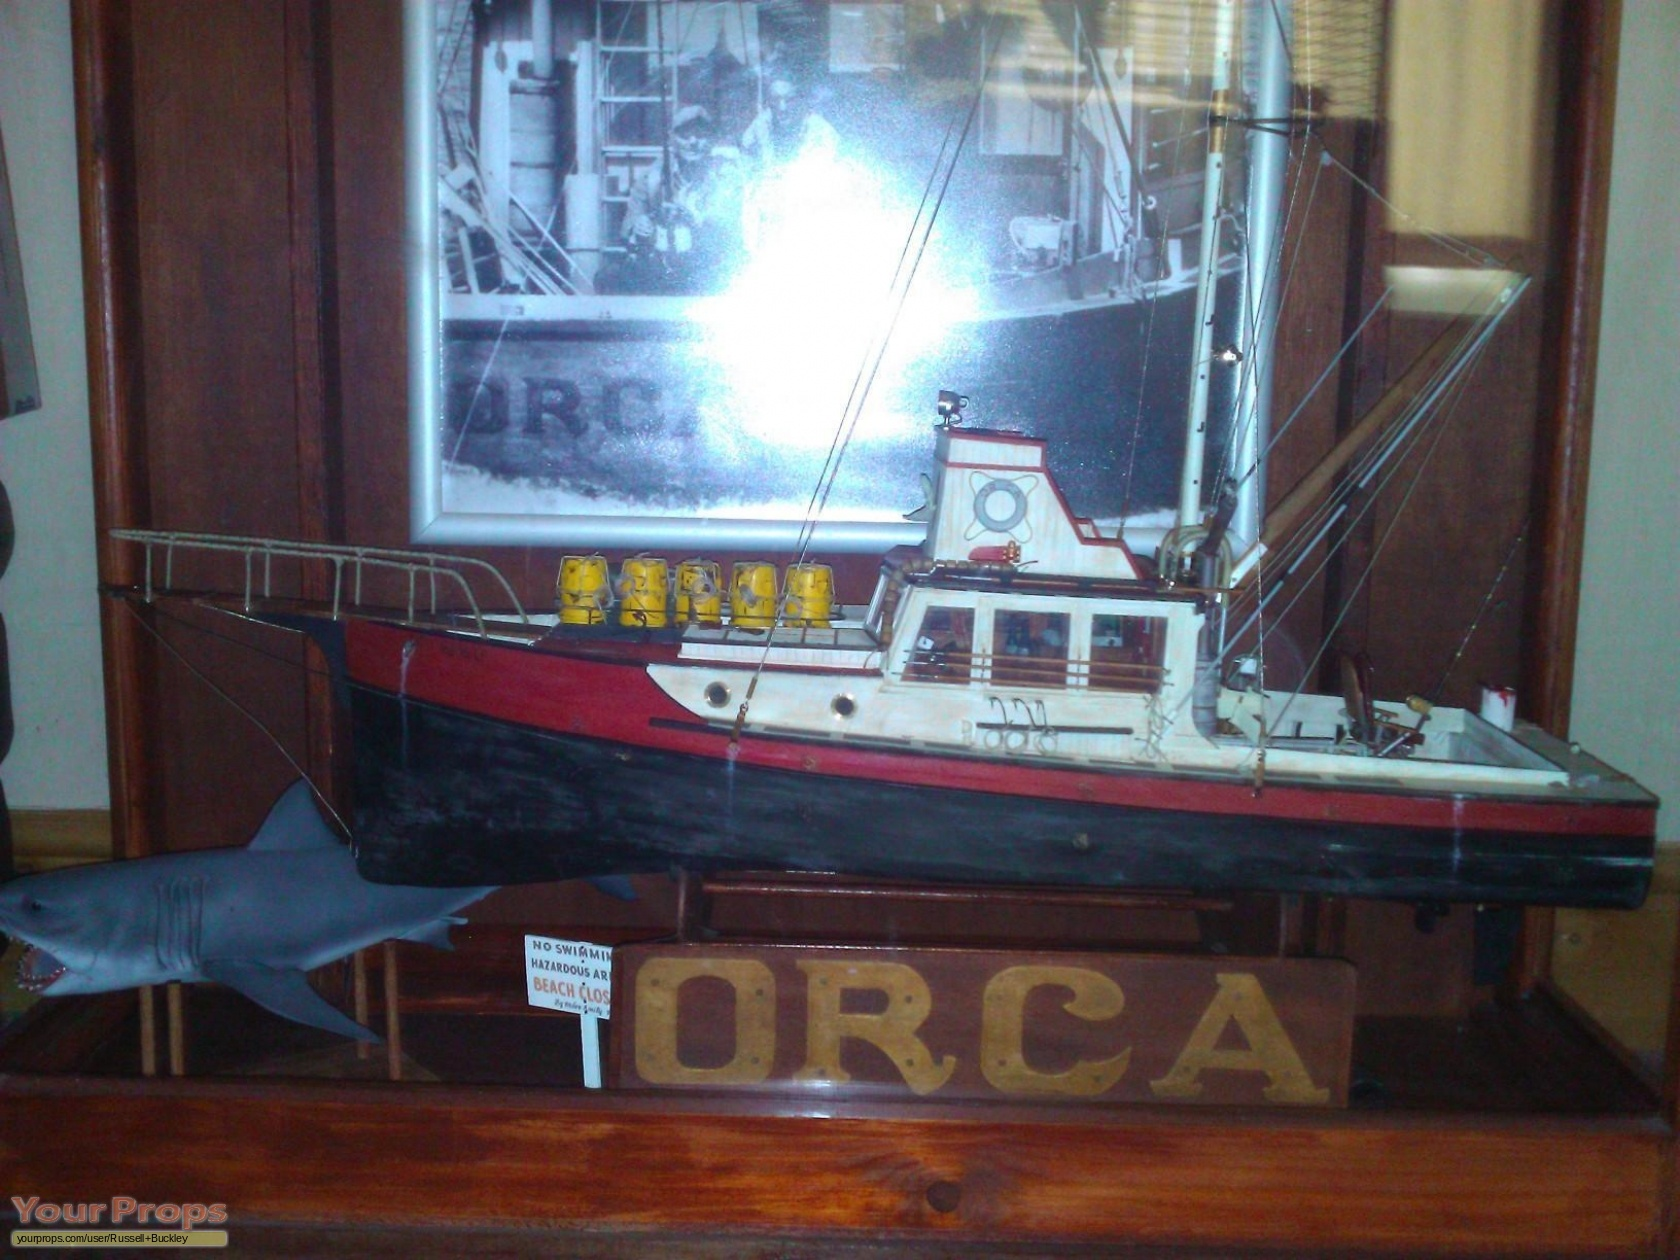 Jaws 'ORCA' Lobster Fishing Boat Replica (3 ft) made from scratch